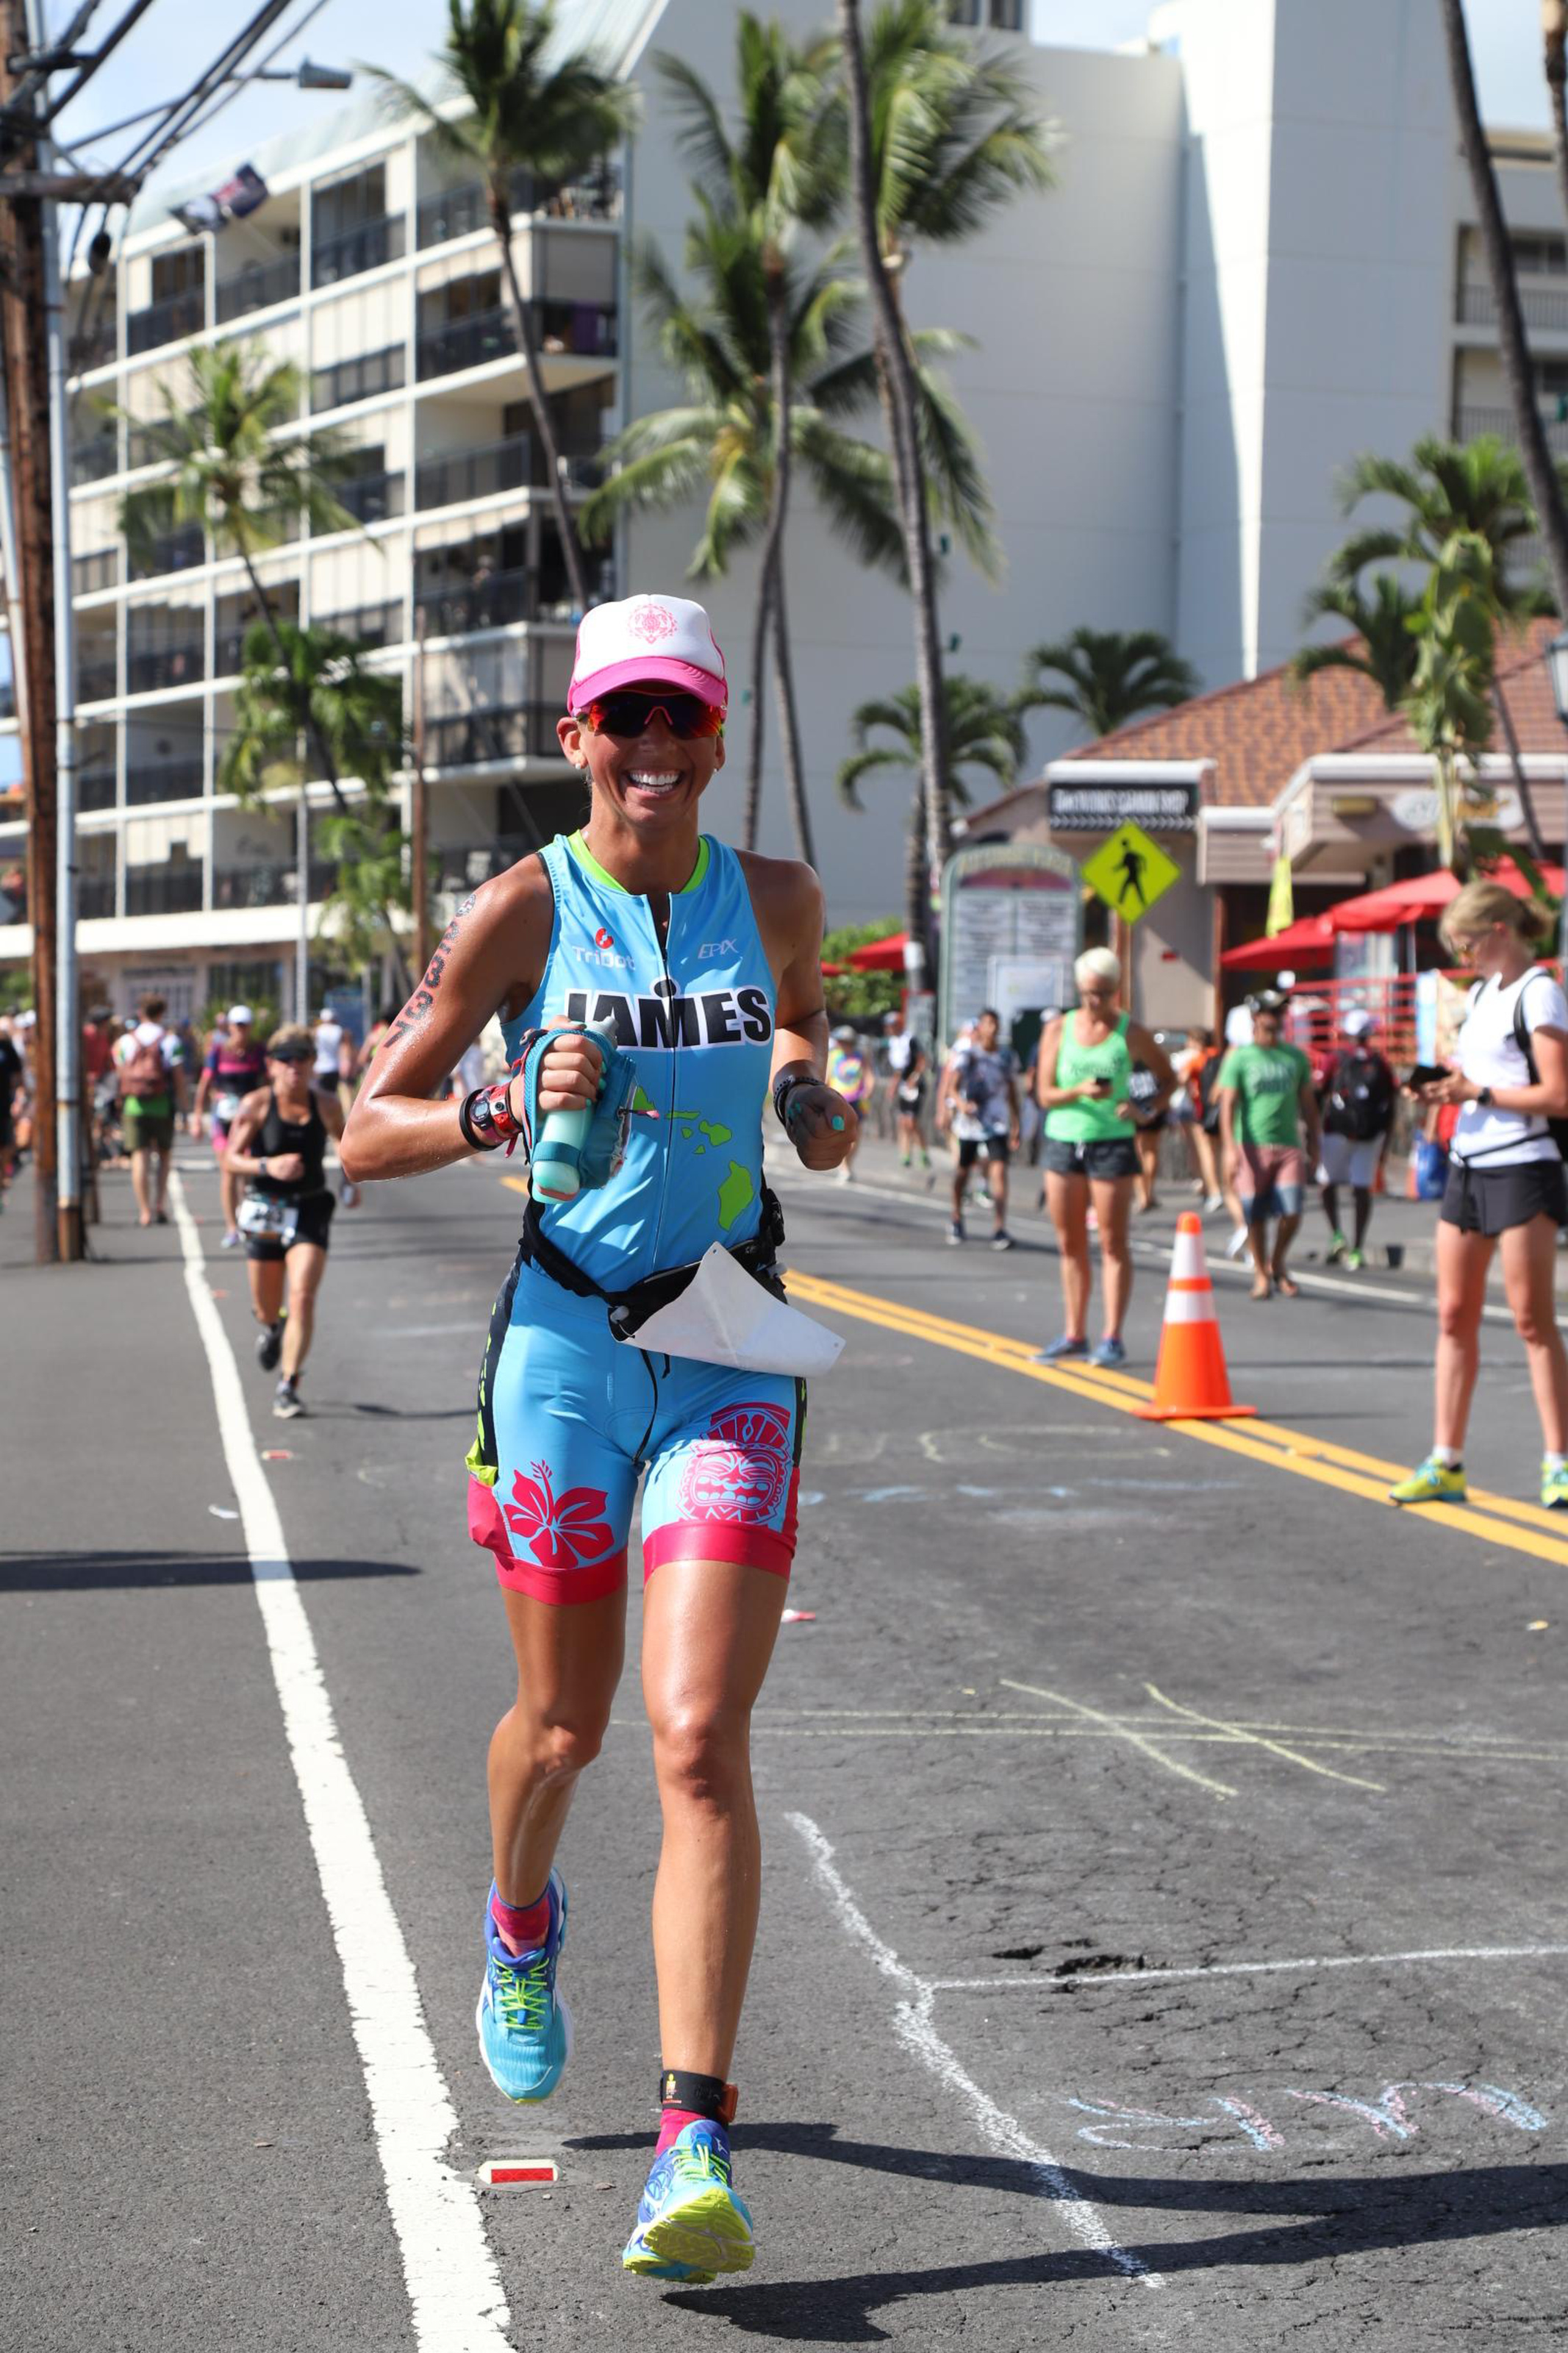 Coach_Terry_Wilson_Pursuit_of_The_Perfect_Race_IRONMAN_World_Championship_Kona_Elizabeth_James_2.JPG